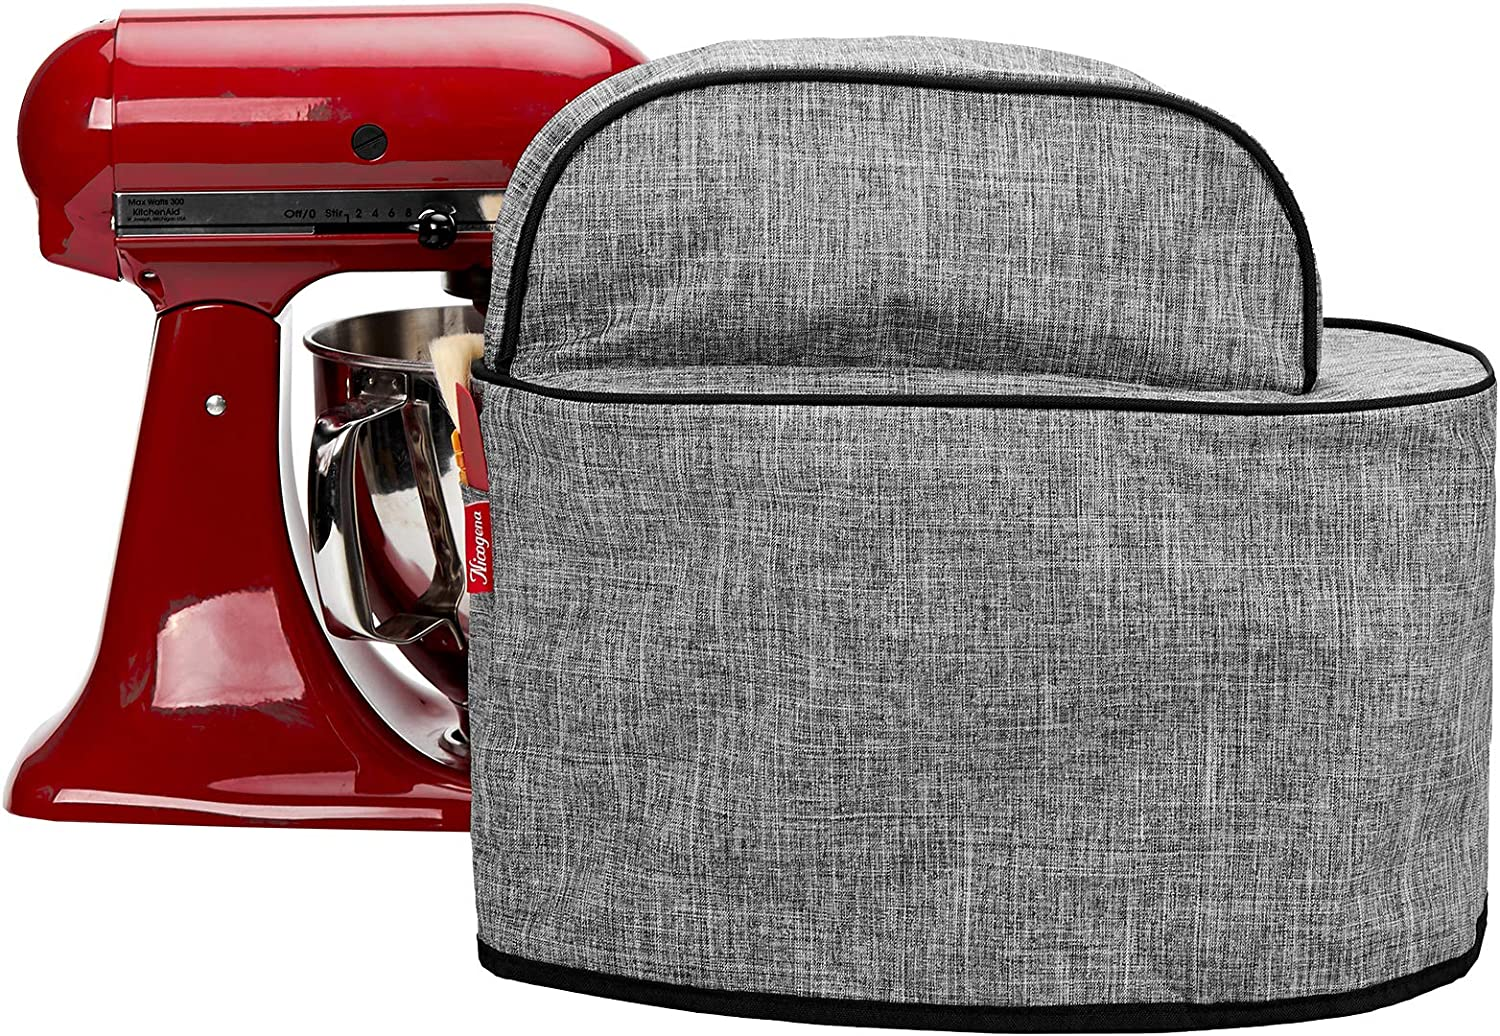 Grey NICOGENA Visible Stand Mixer Dust Cover with Pockets ...